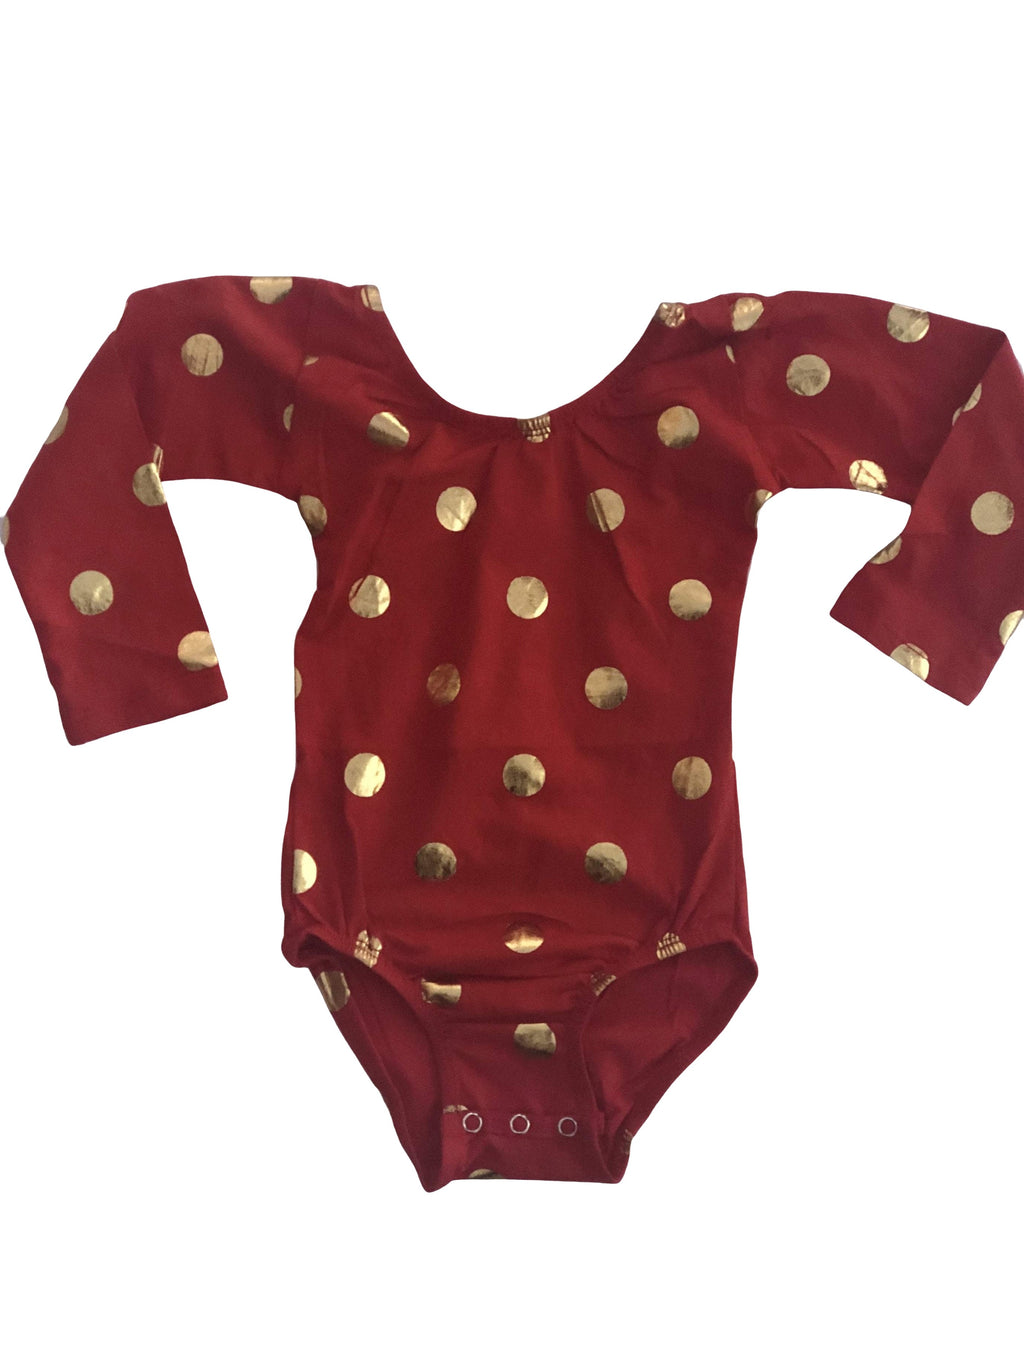 Red & Gold Foil Dot (Long Sleeve) Leotard - Morgan+Mae Co.